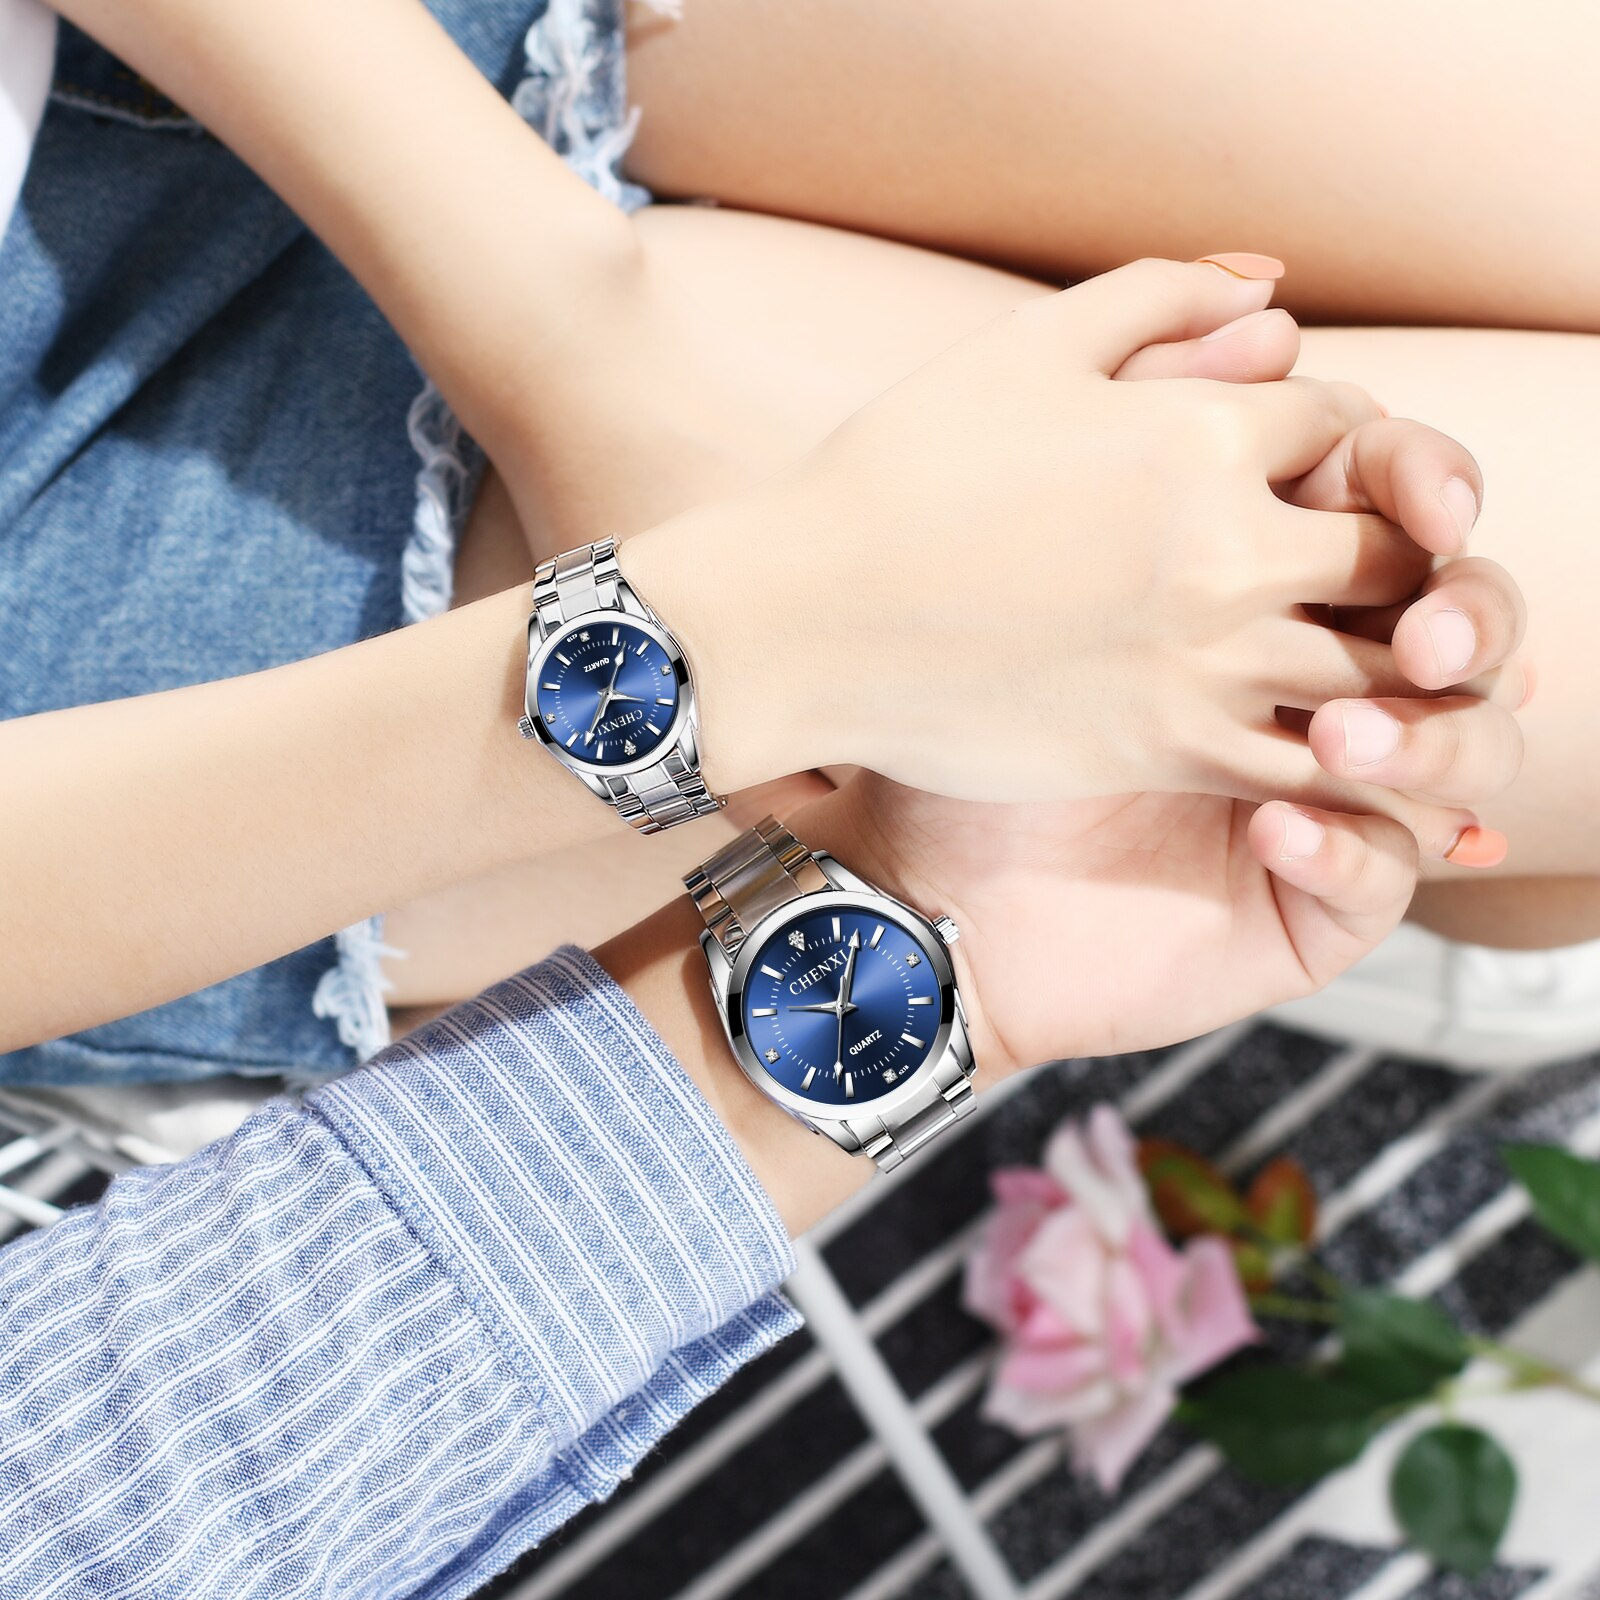 CHENXI watches female ladies watches fashion couple watches waterproof quartz watches men's watches фото